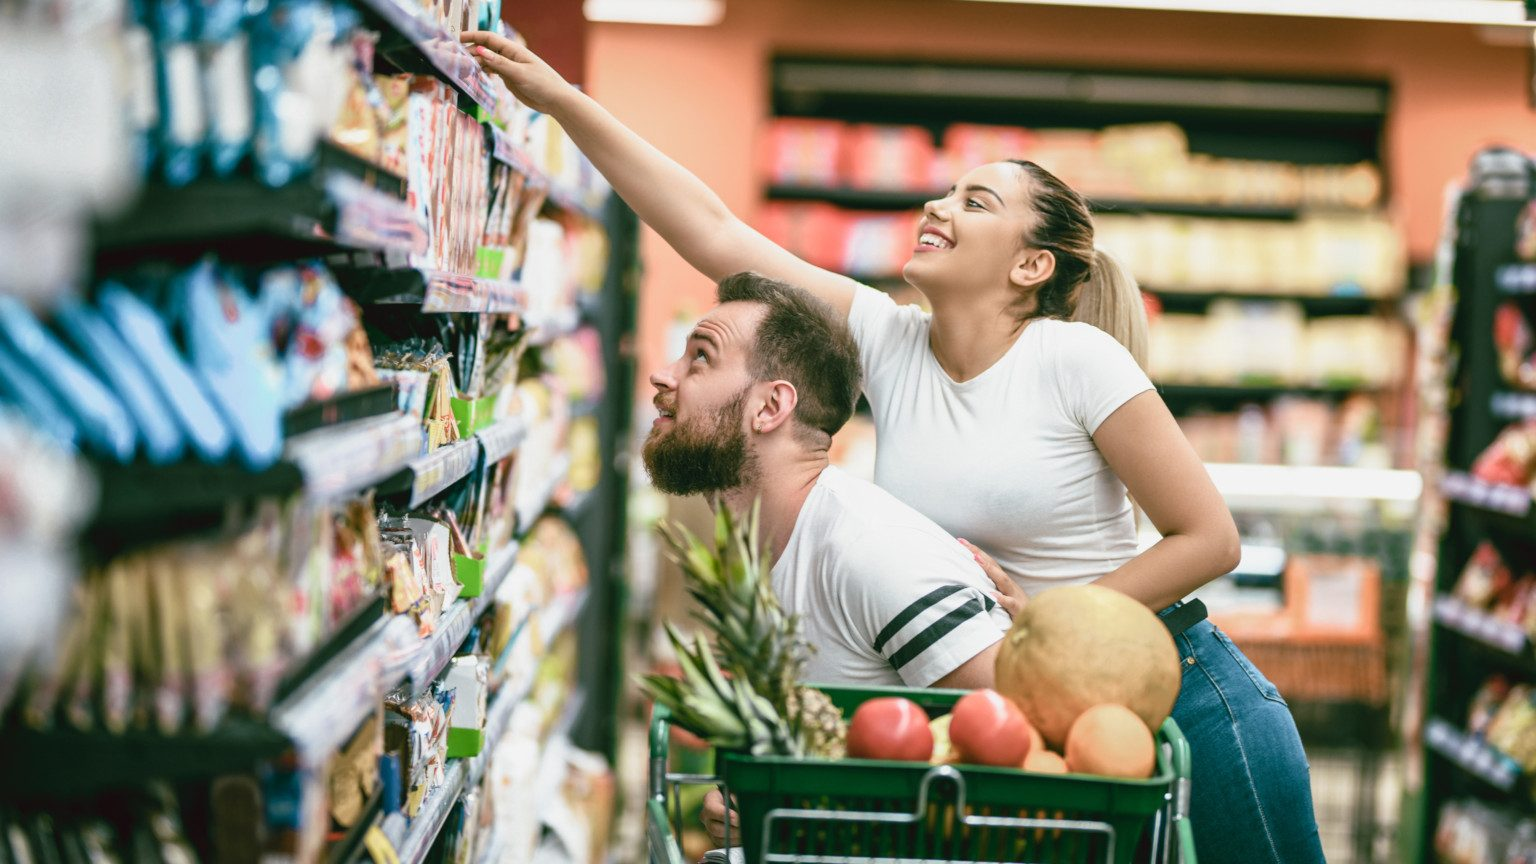 Girl piggy-backing on guy trying to reach food on a grocery store shelf